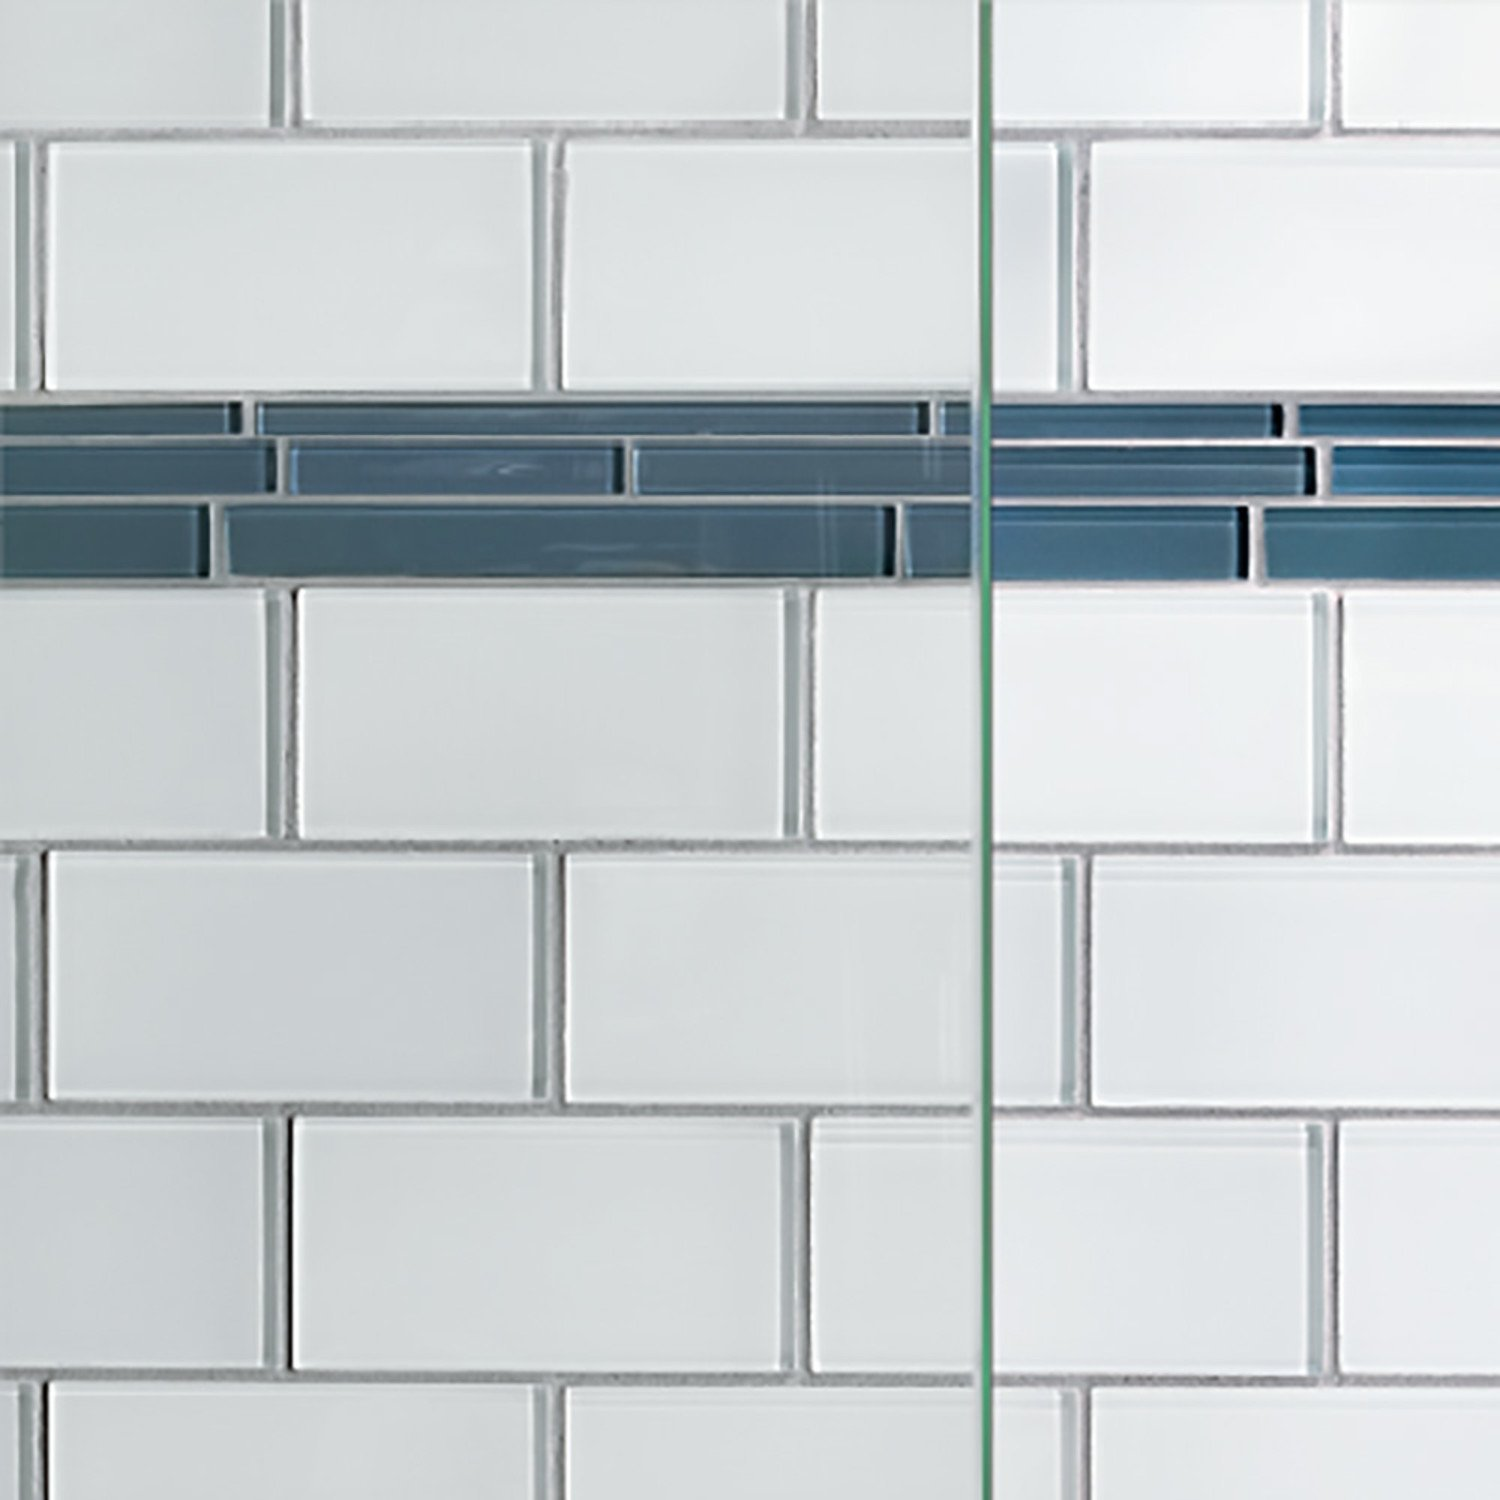 Basco Classic 28.625 to 30.125 in. width, Semi-Frameless Pivot Shower Door, Clear Glass, Silver Finish by Basco Shower Door (Image #4)